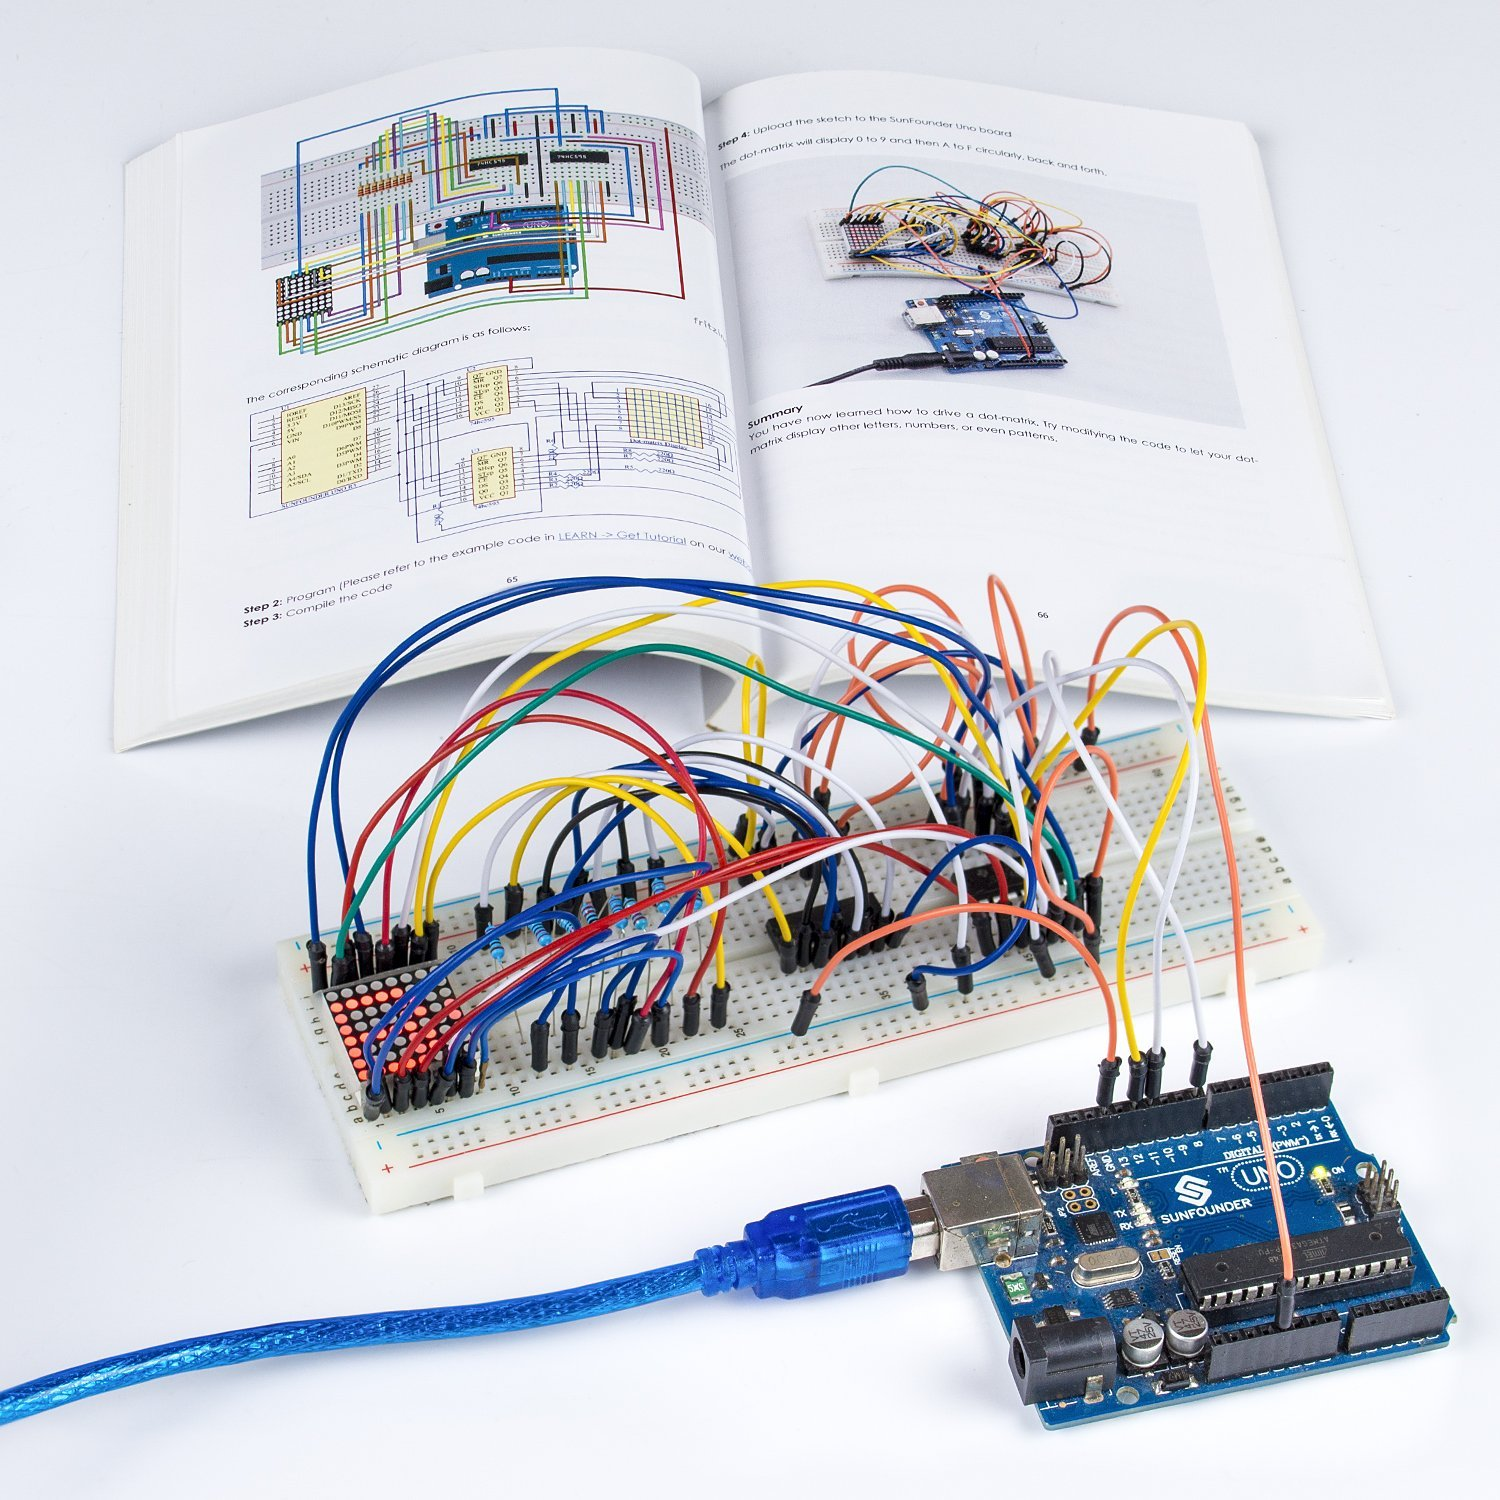 Sunfounder Rfid Starter Kit For Arduino Uno R3 Mega Nano Circuit Learn About Boards Board Jumper Wires Sensors Breadboard